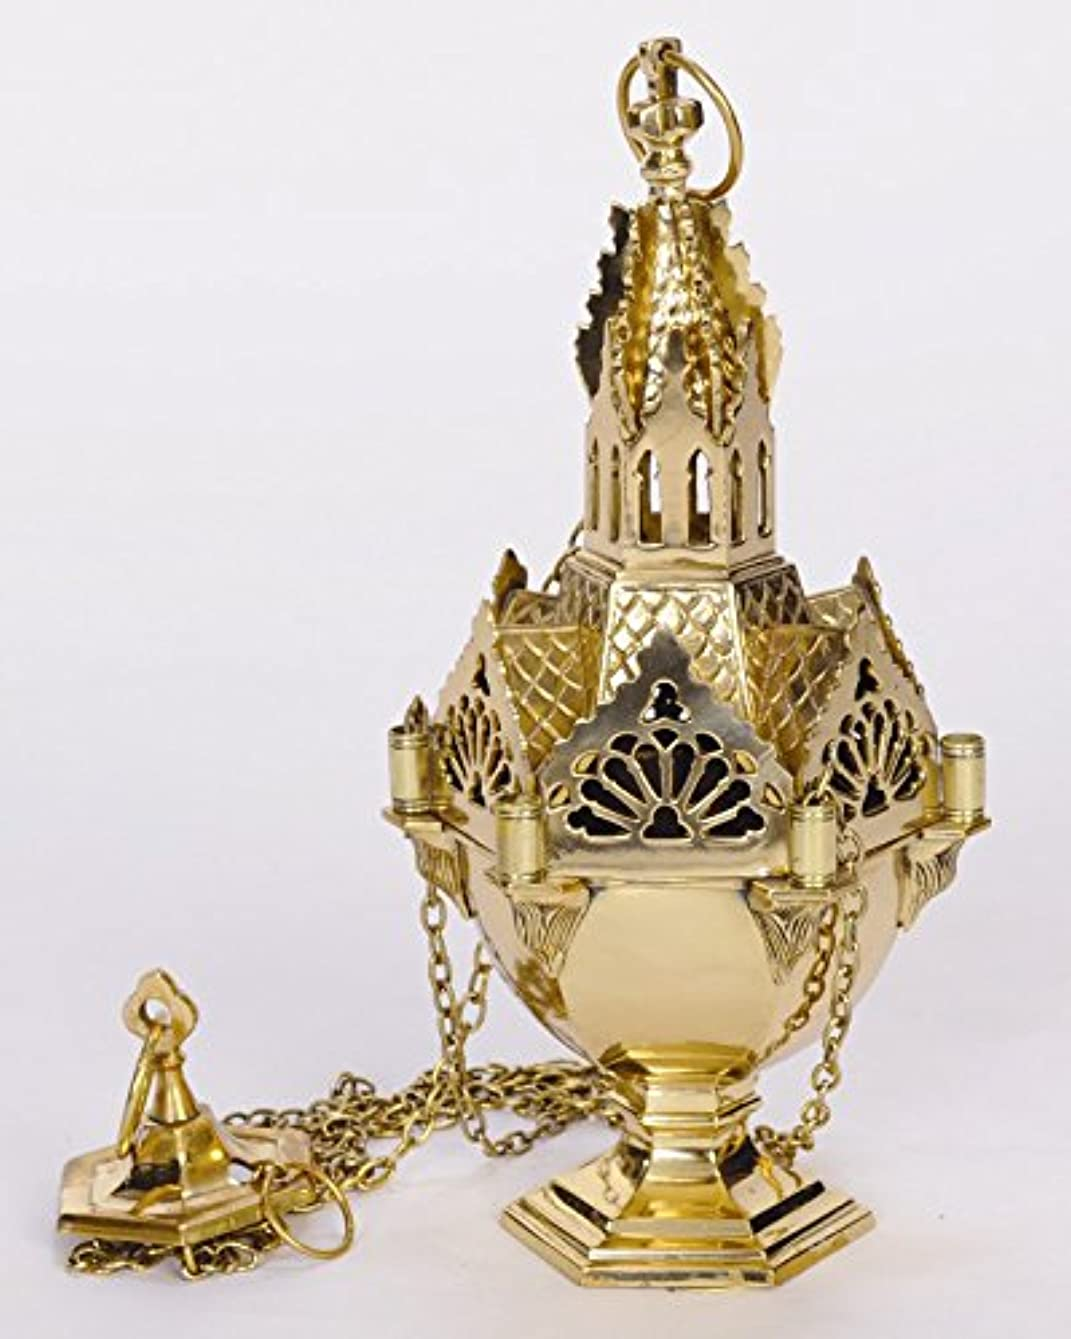 半ば半ば凝視Ornateゴシック教会Censer – Thurible – Incenser – Chalice ( ccg-59 )